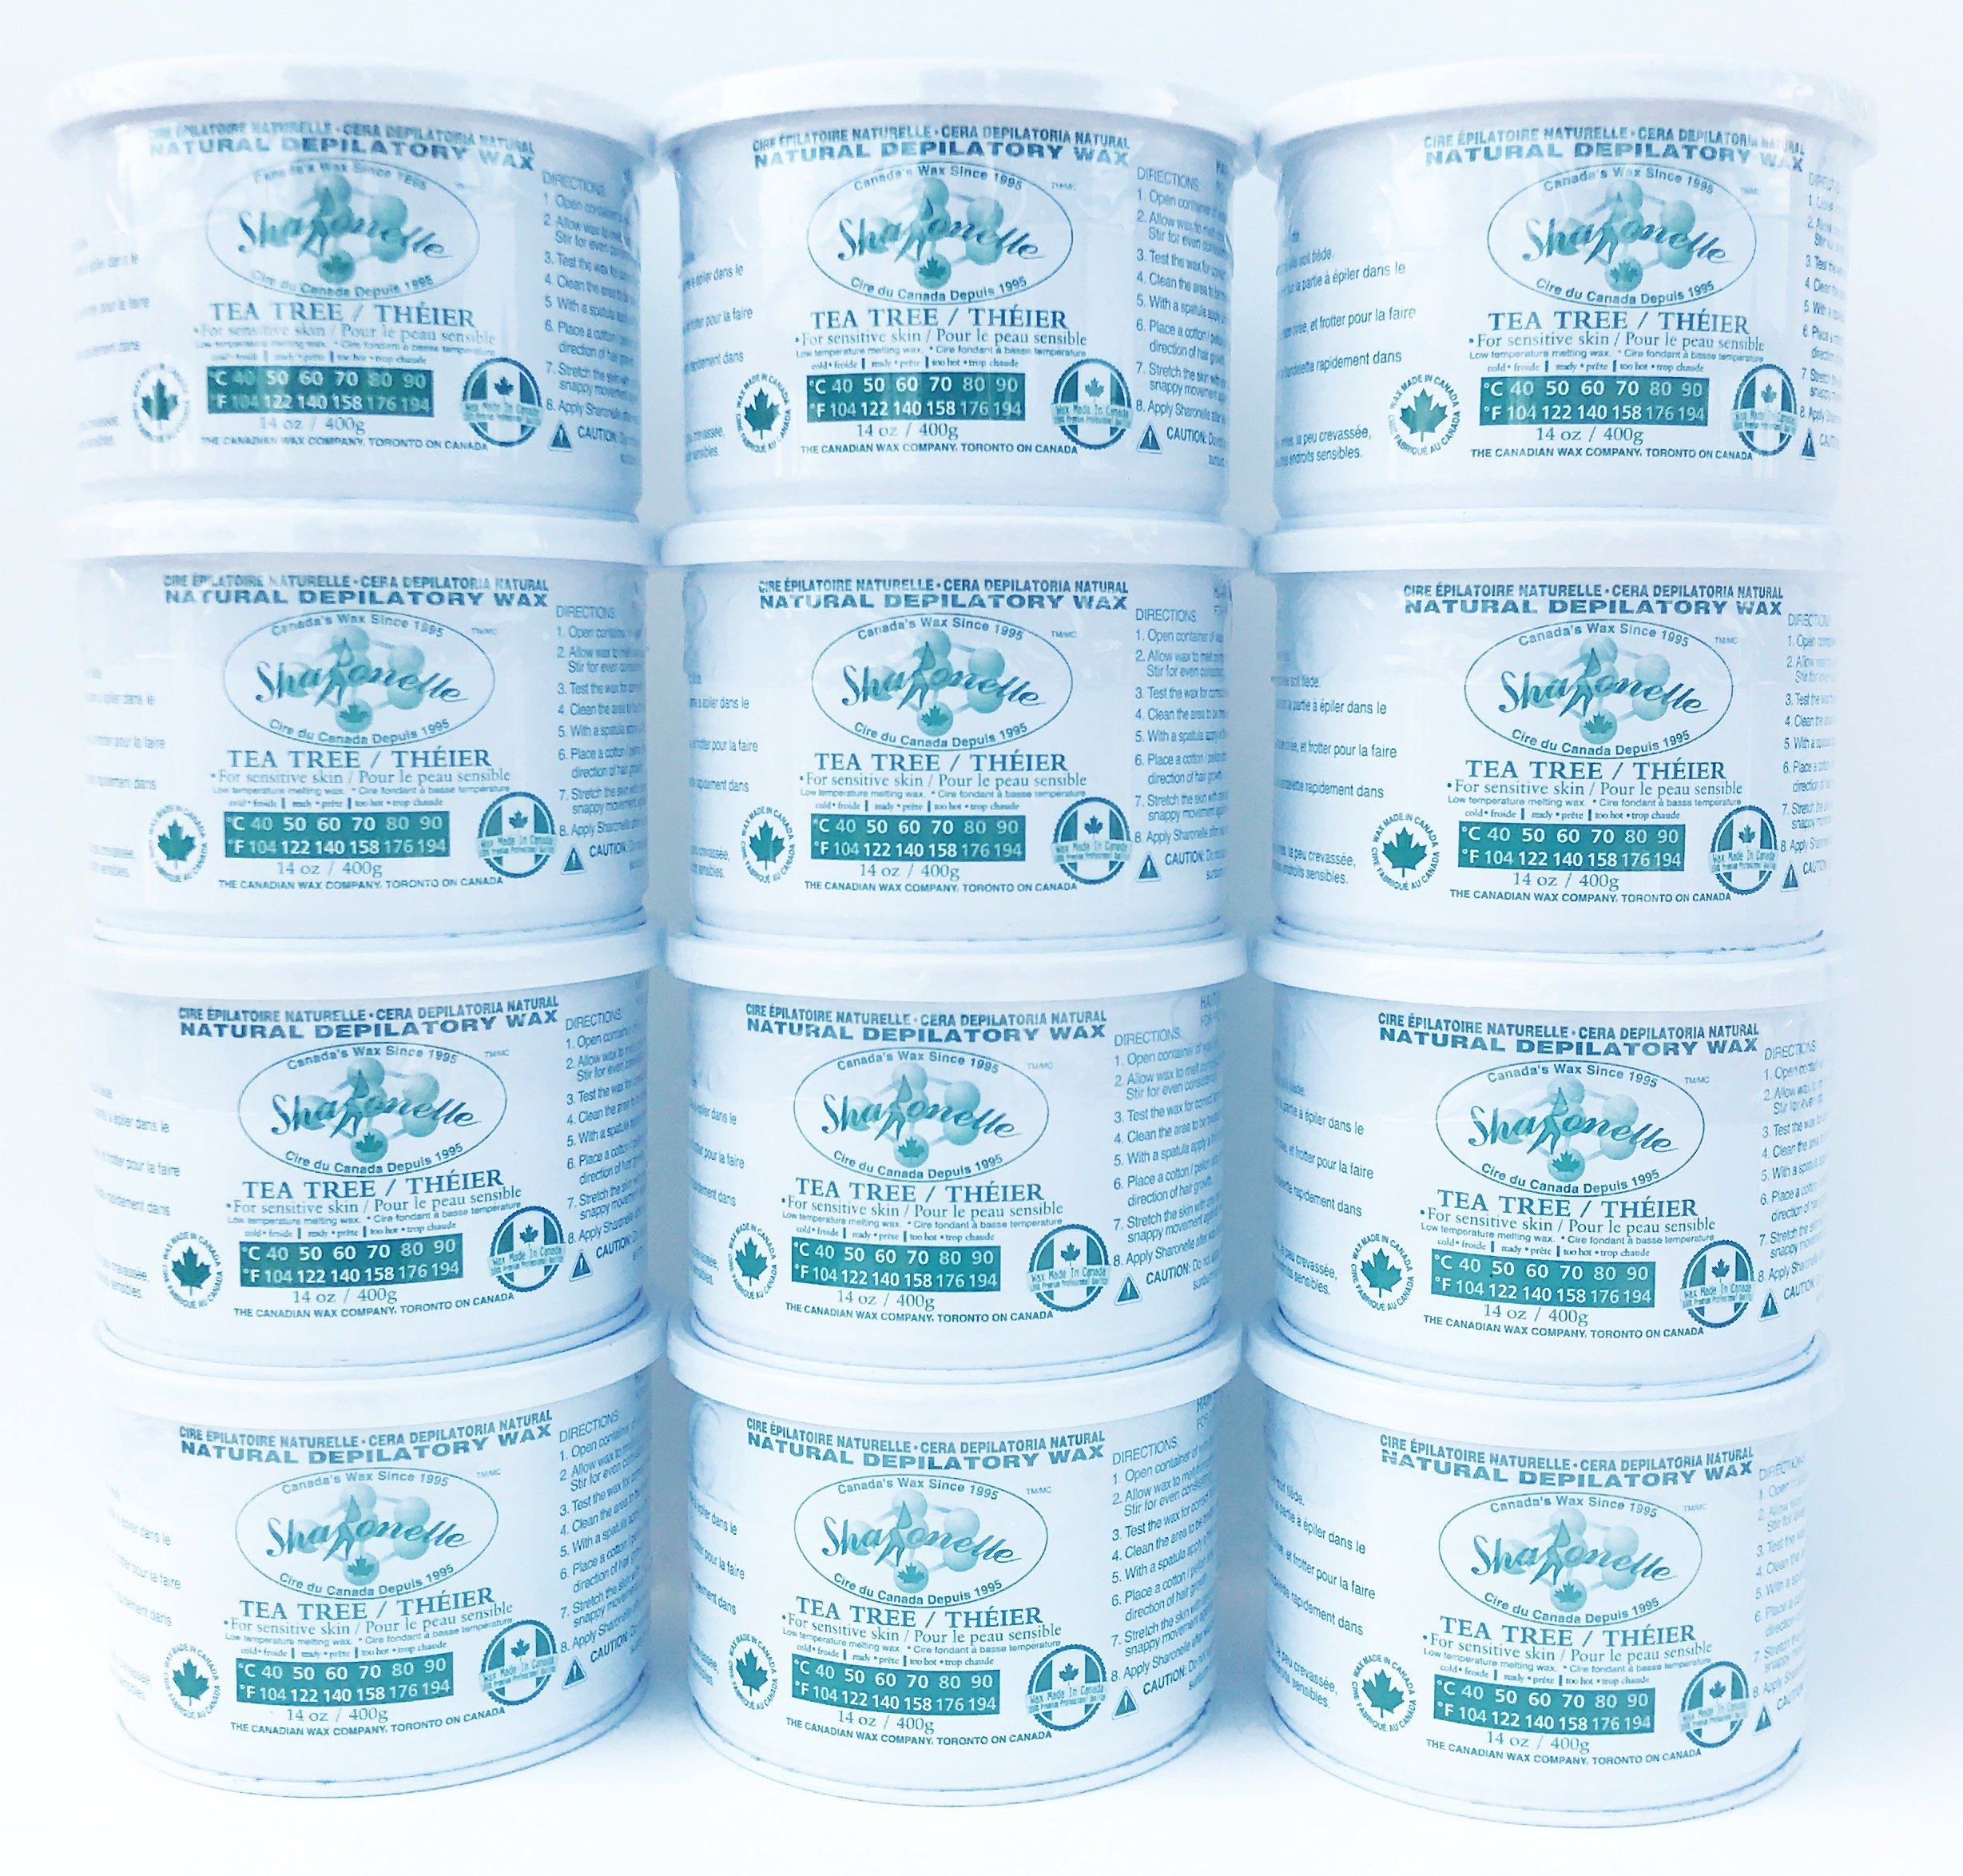 Sharonelle Natural Tea Tree Soft Wax For Sensitive Skin in 14 oz. - 12 cans